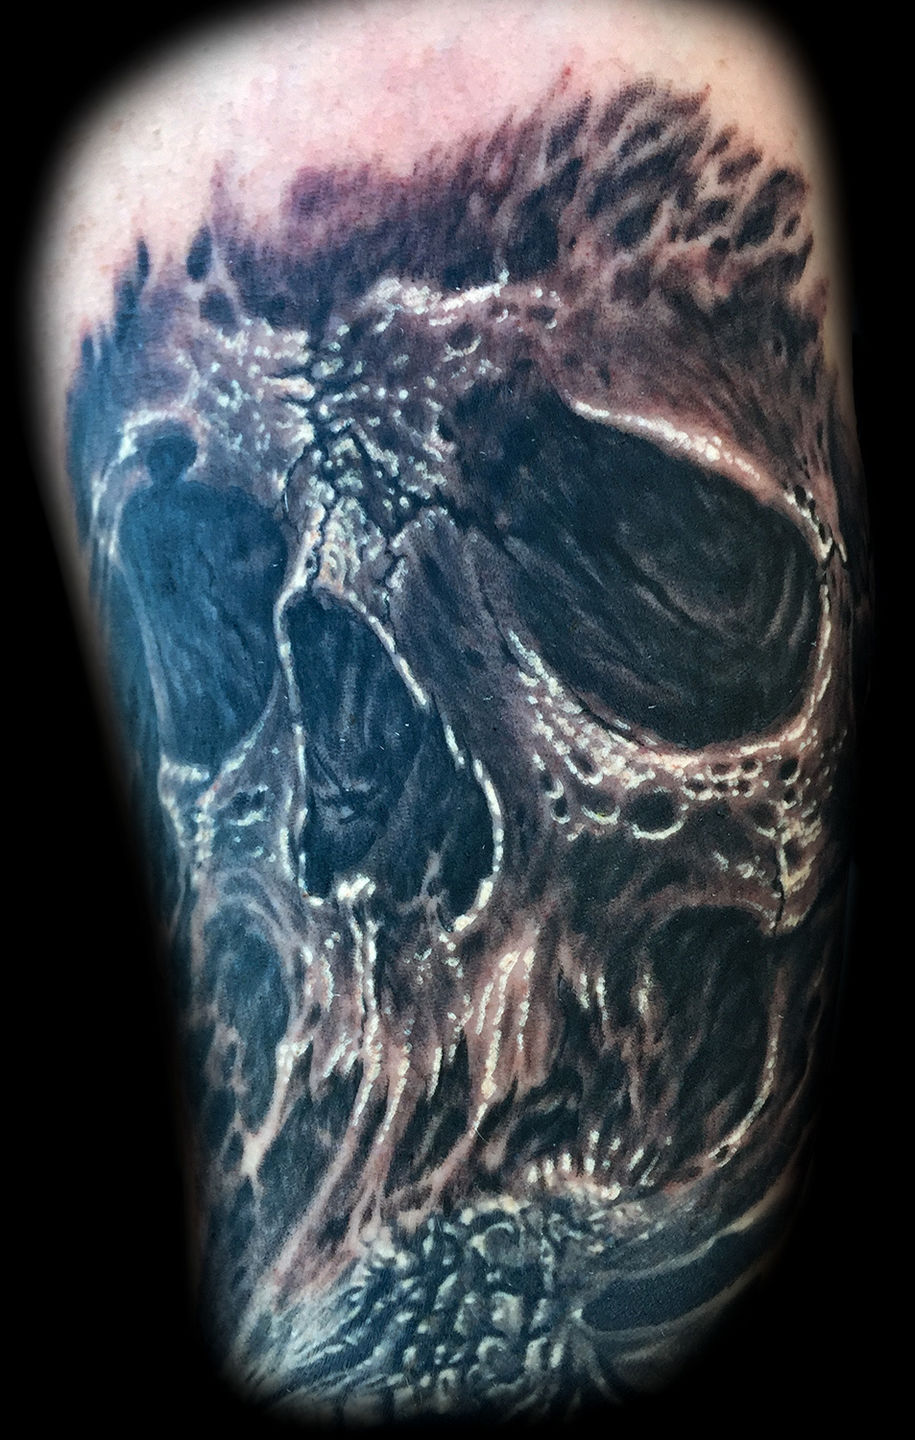 Best-las-vegas-tattoo-artists-shops-joe-riley-inner-visions-tattoo-skull